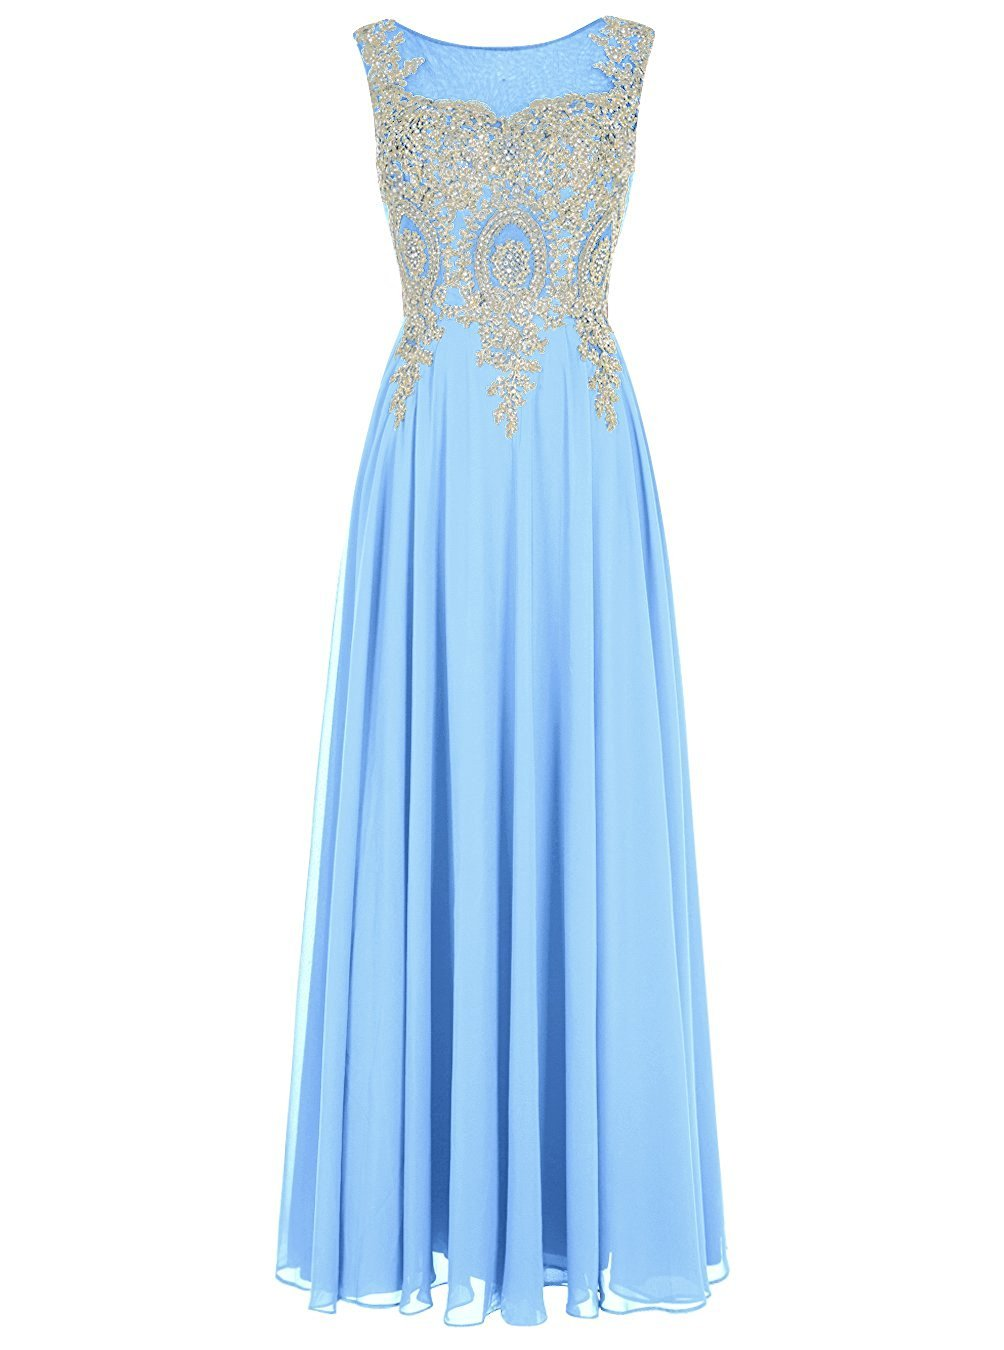 Primary image for Long Applique Prom Dress Long Chiffon Evening Dress Formal Dresses Party Gown